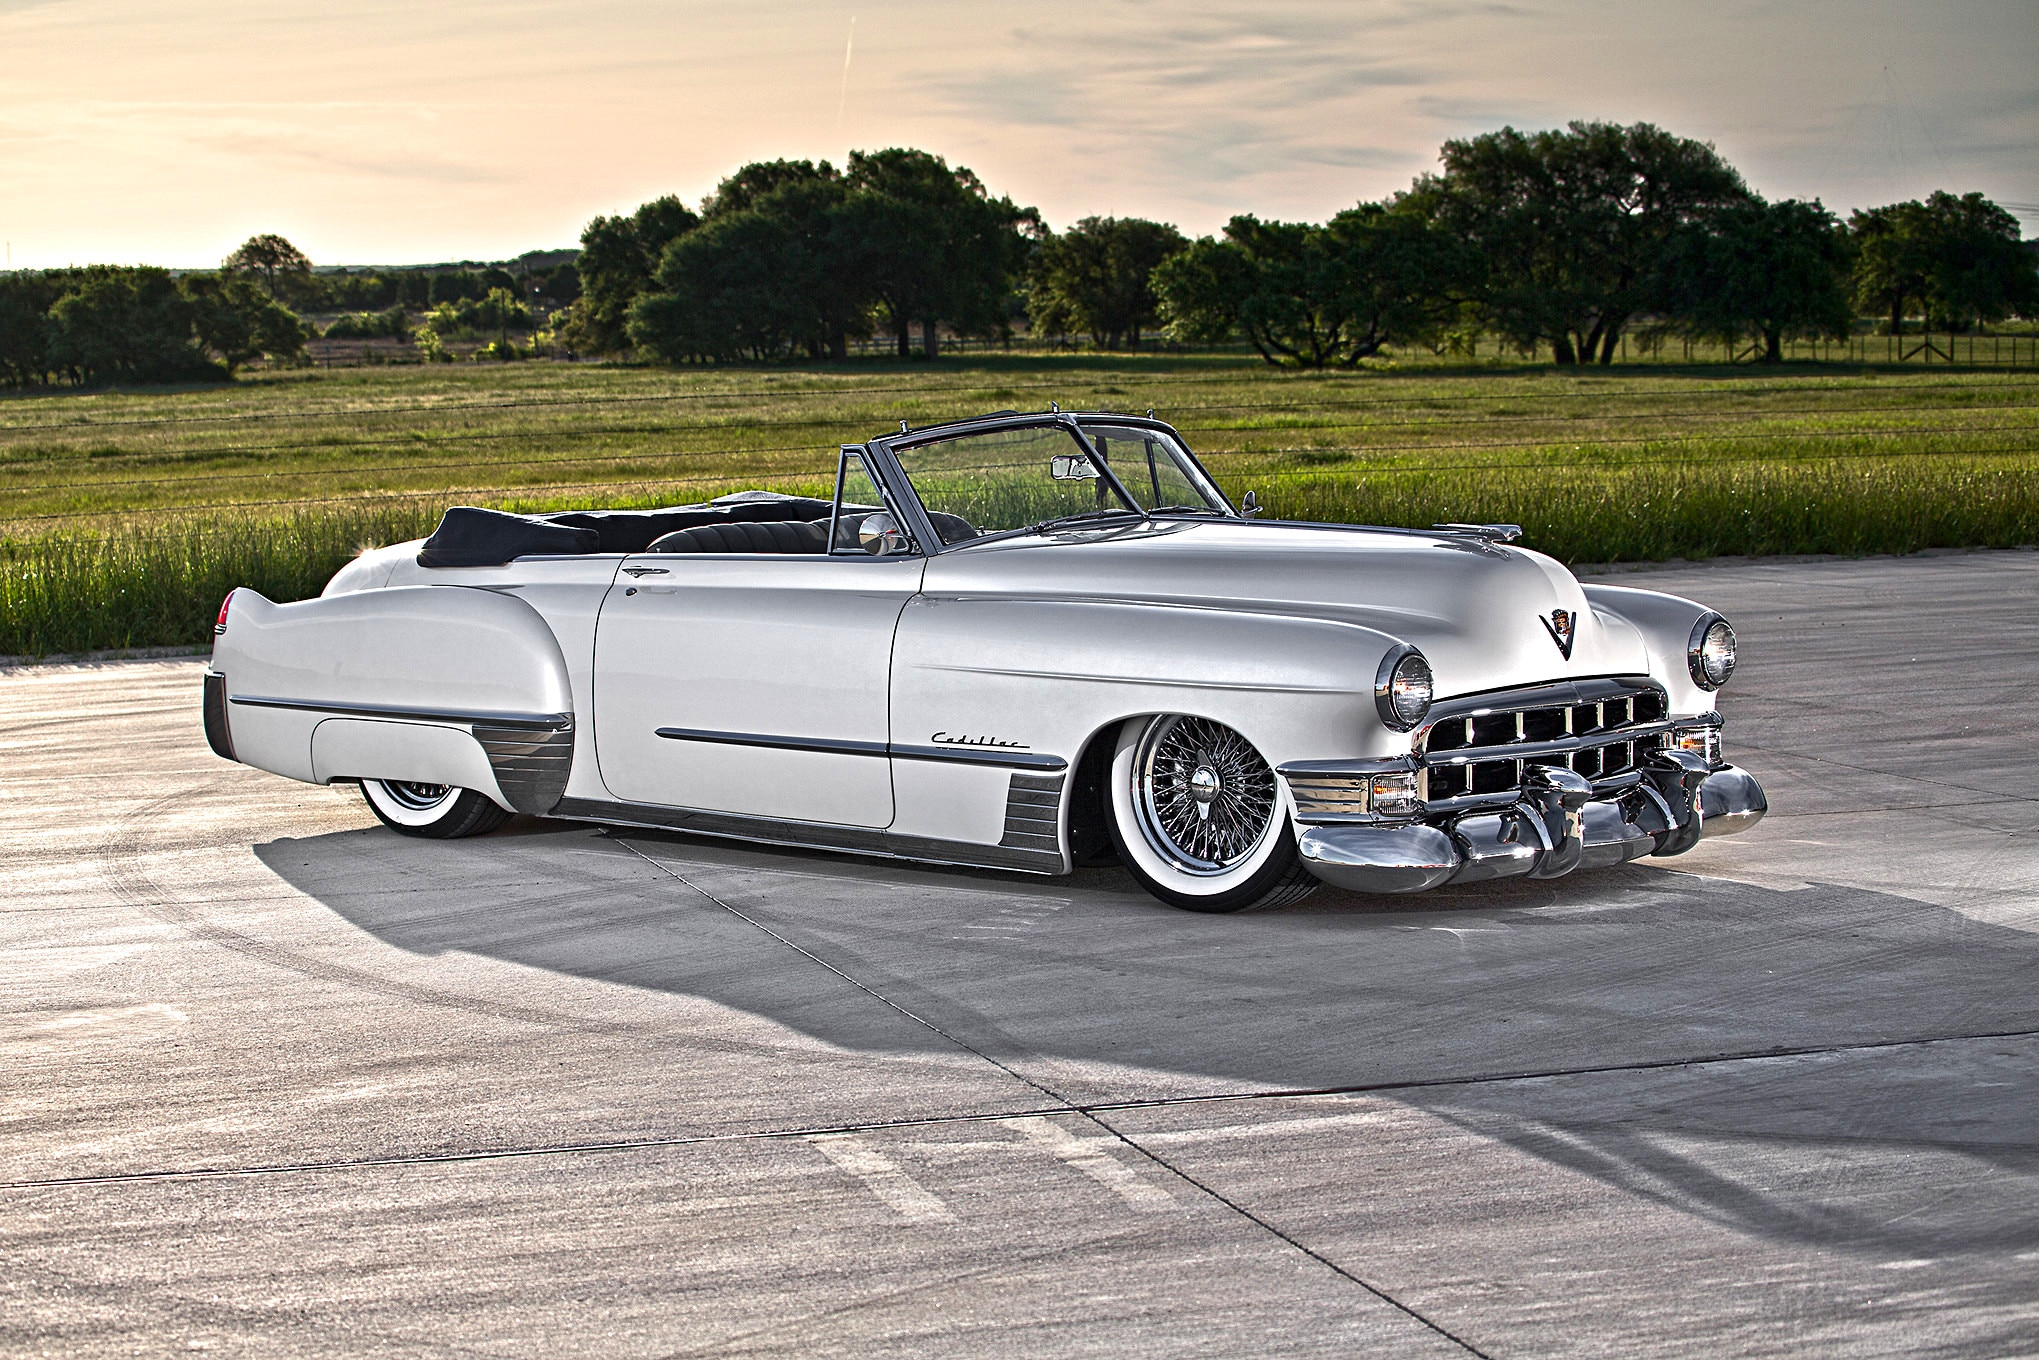 Lowrider Car Wallpaper Supercharged 975hp 1949 Caddy Delivers In Luxury Hot Rod